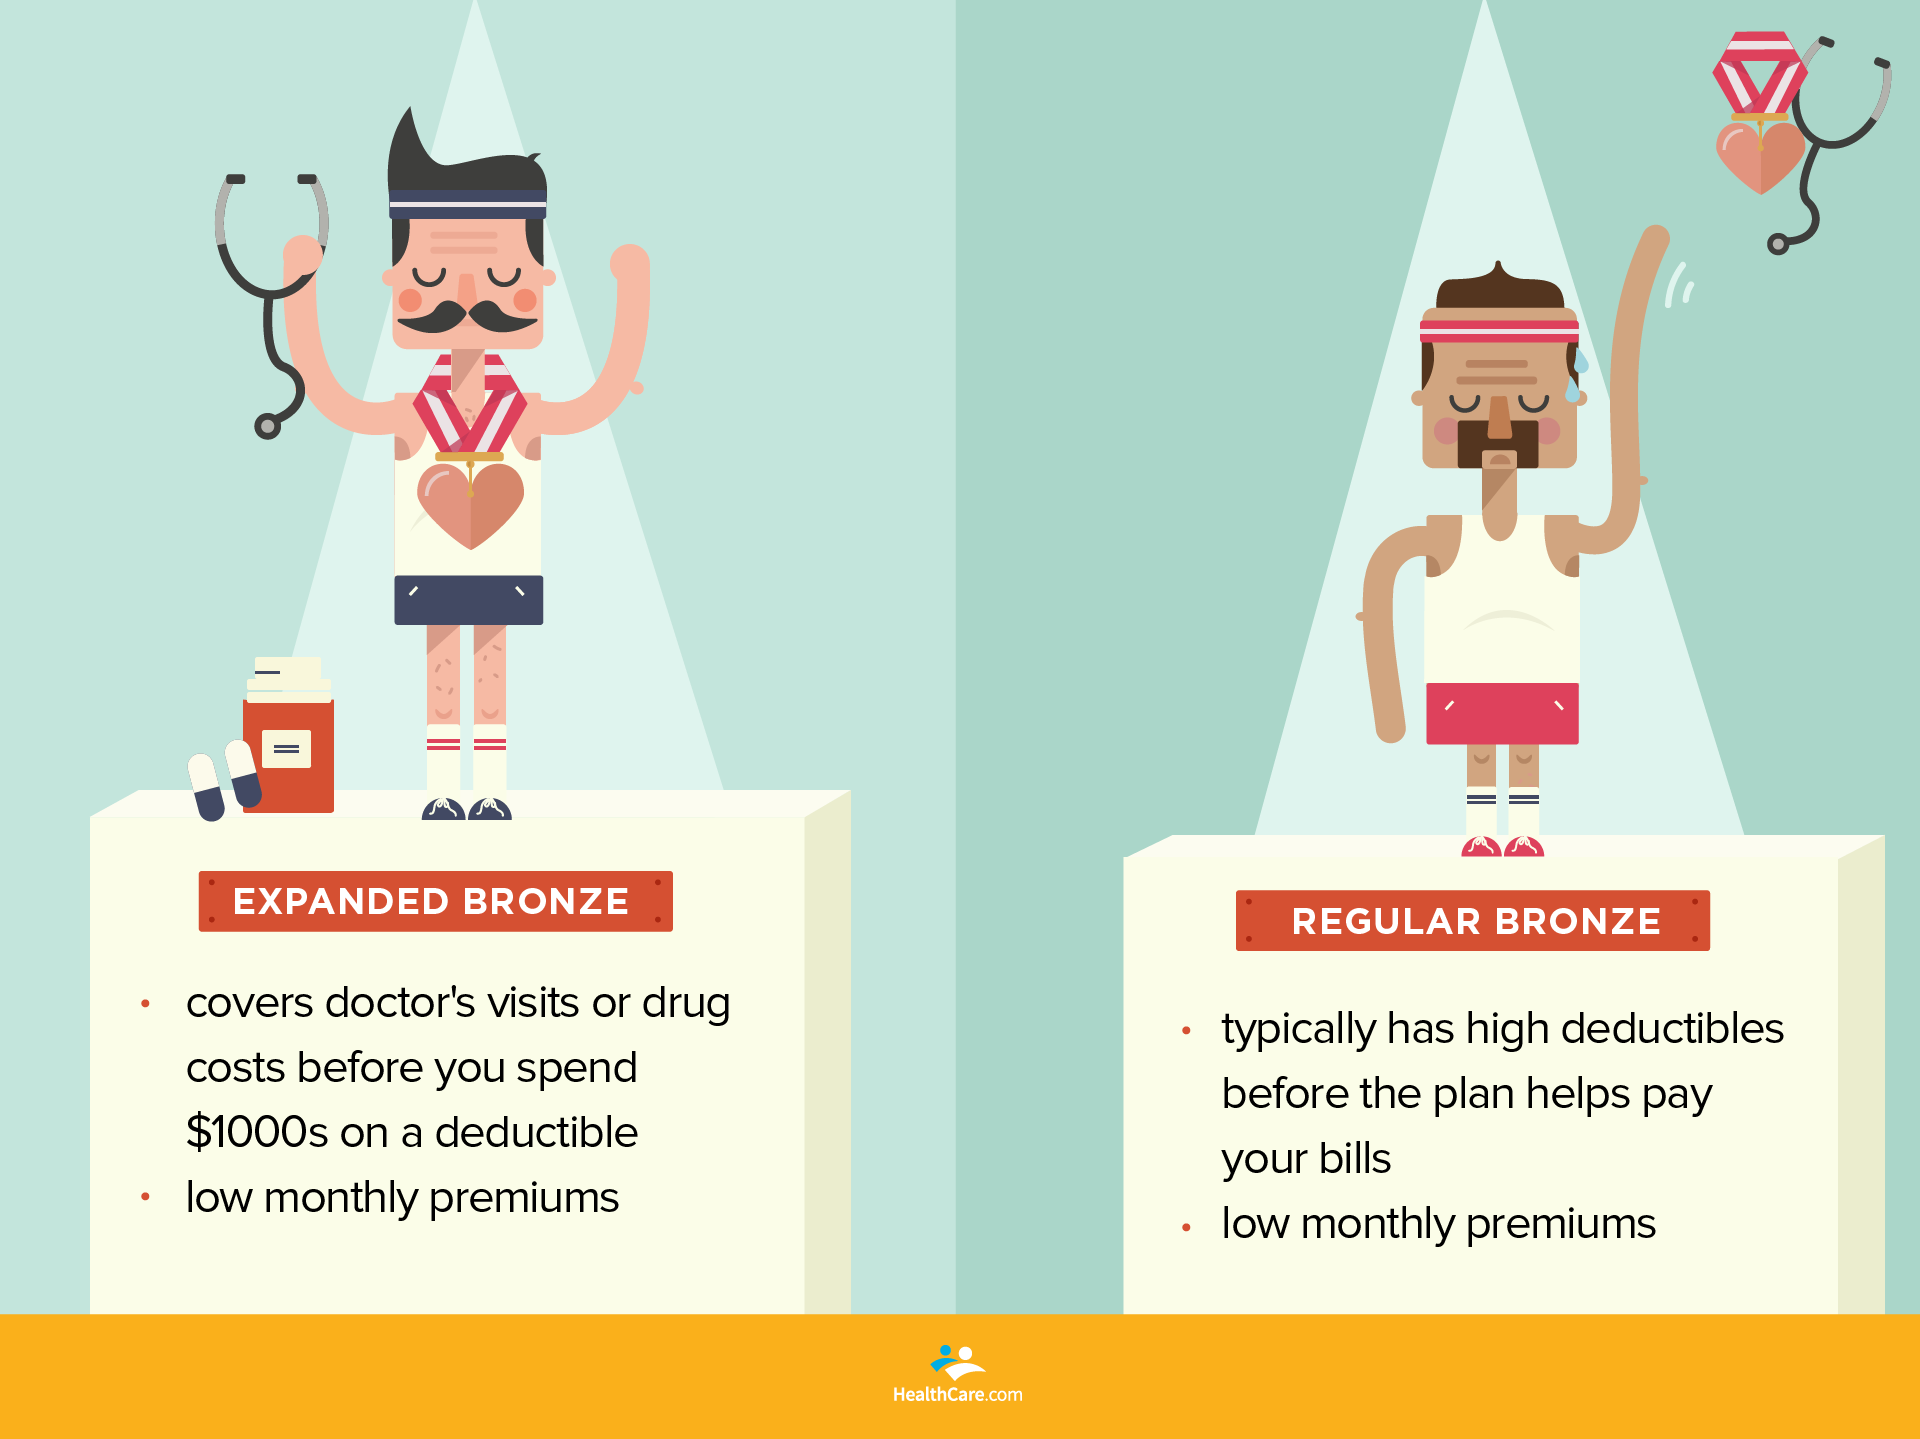 Bronze medalist comparison | HealthCare.com